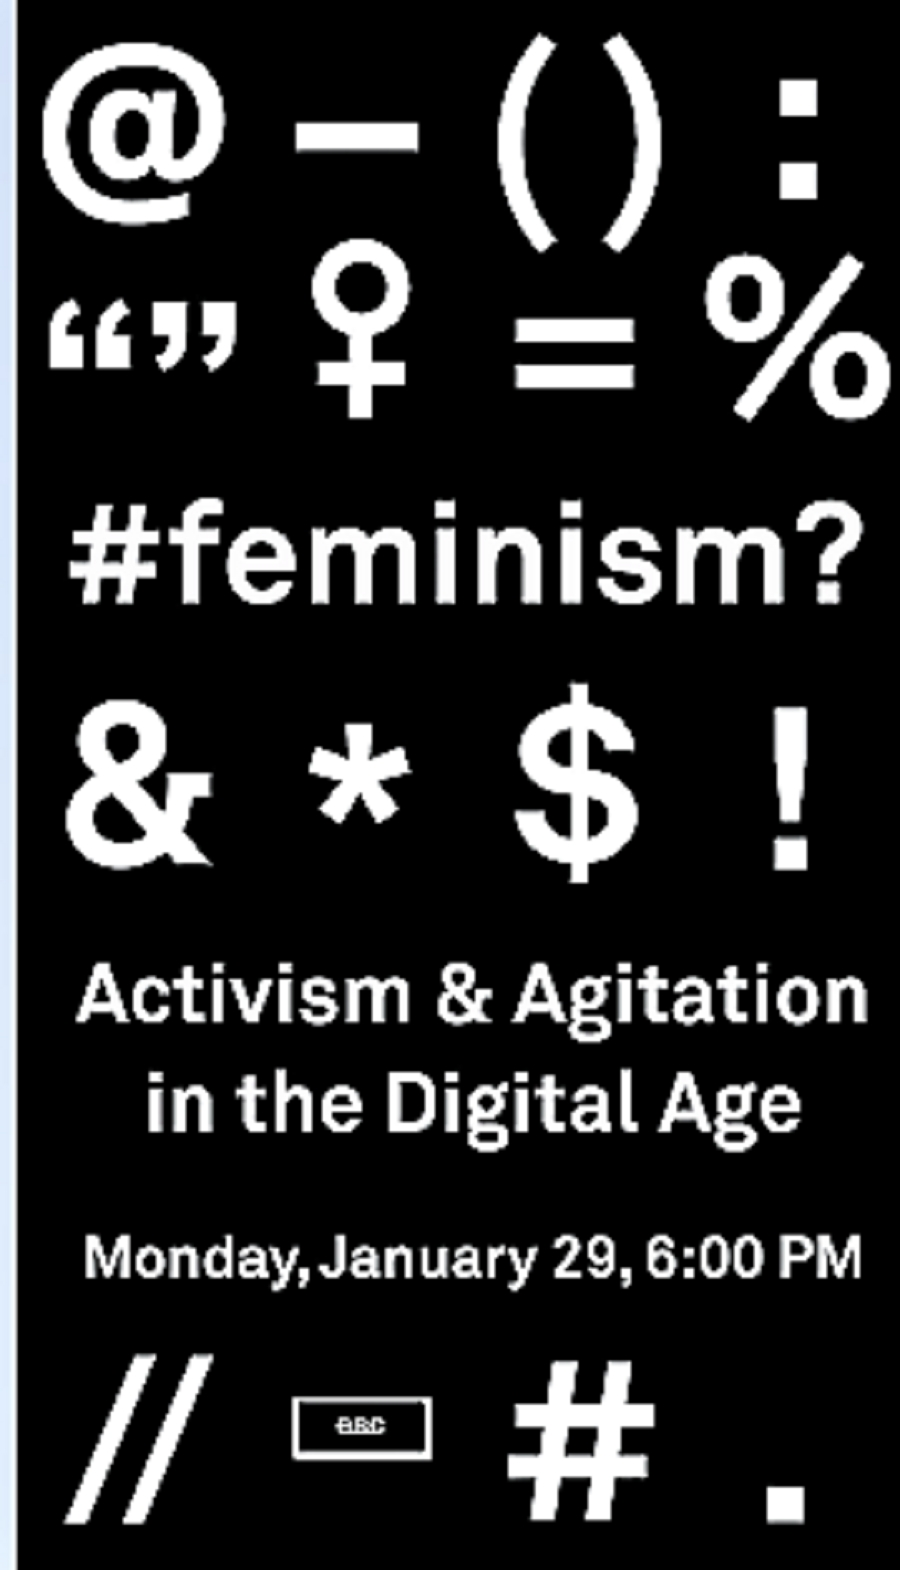 Feminism in the Digital Age: Tang Museum Hosts Innovate Thinkers Discussion Monday